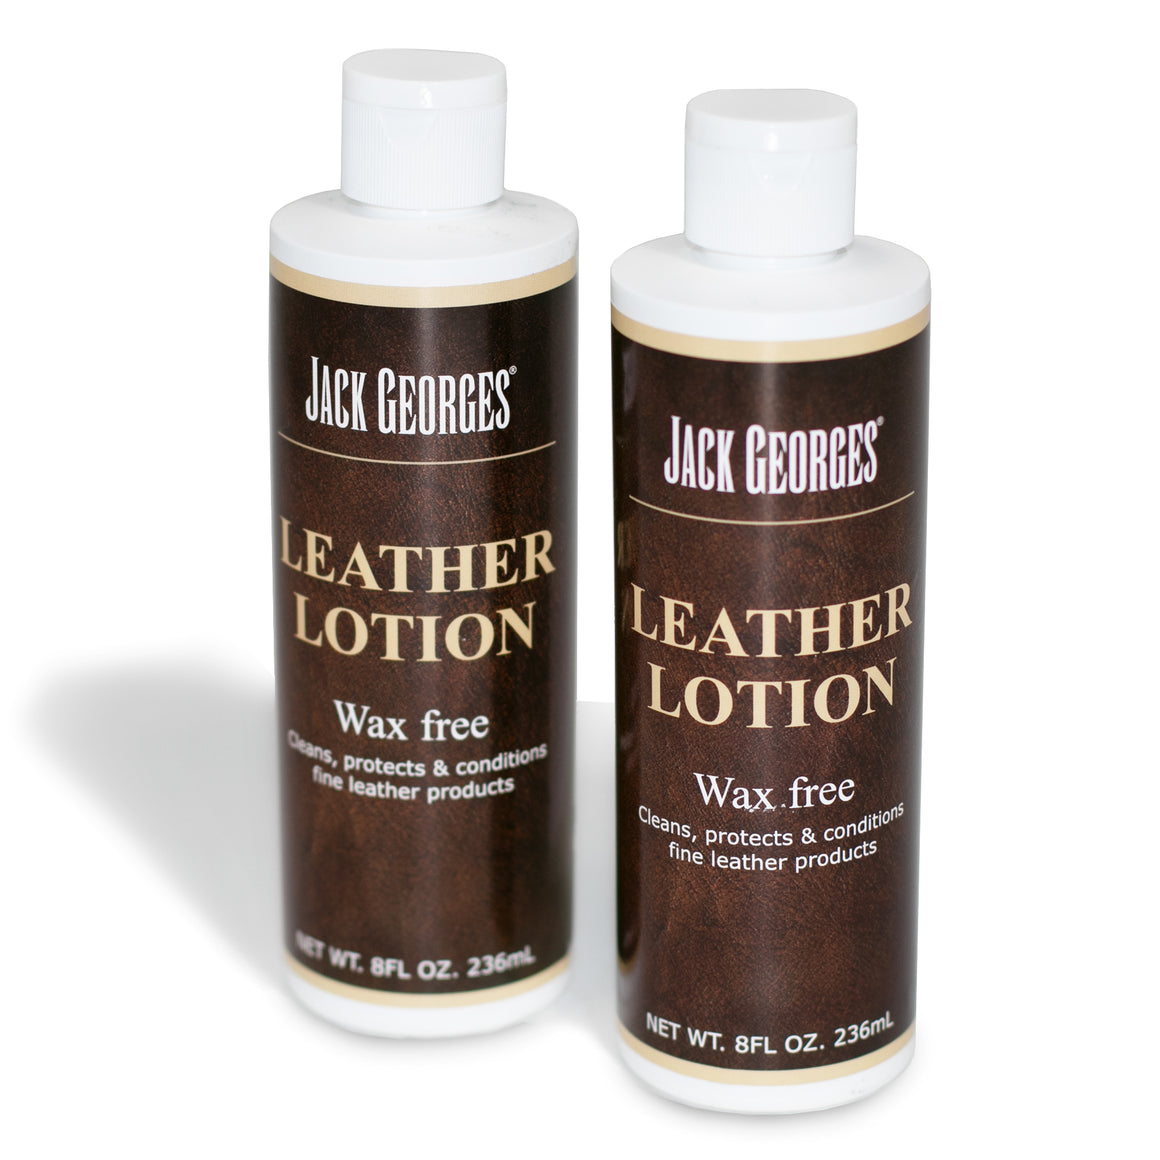 be309a8692ba3 ... Jack Georges Leather Lotion (2 bottles)